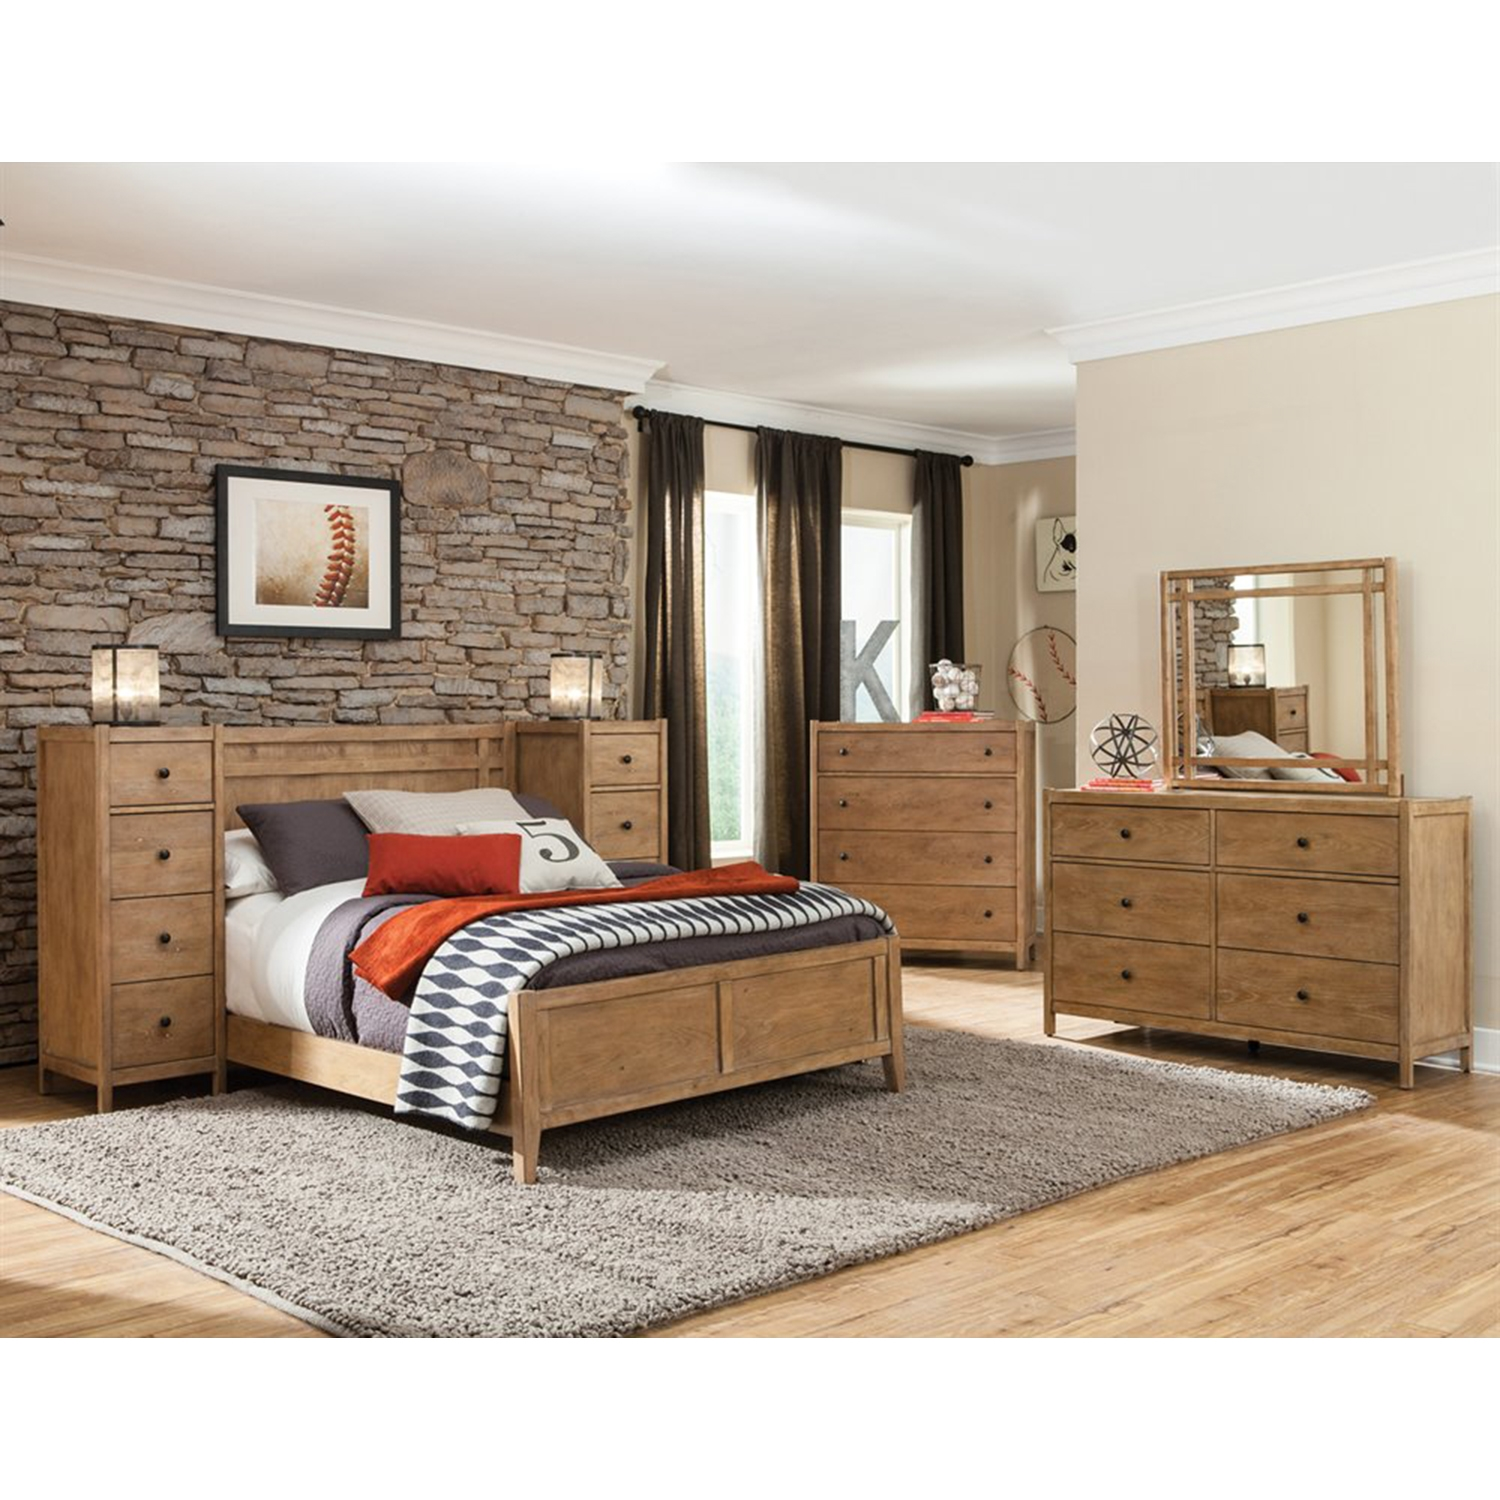 Natural Elements 6-Drawer Dresser - Soft Driftwood with Off-White Glaze - AW-1000-260